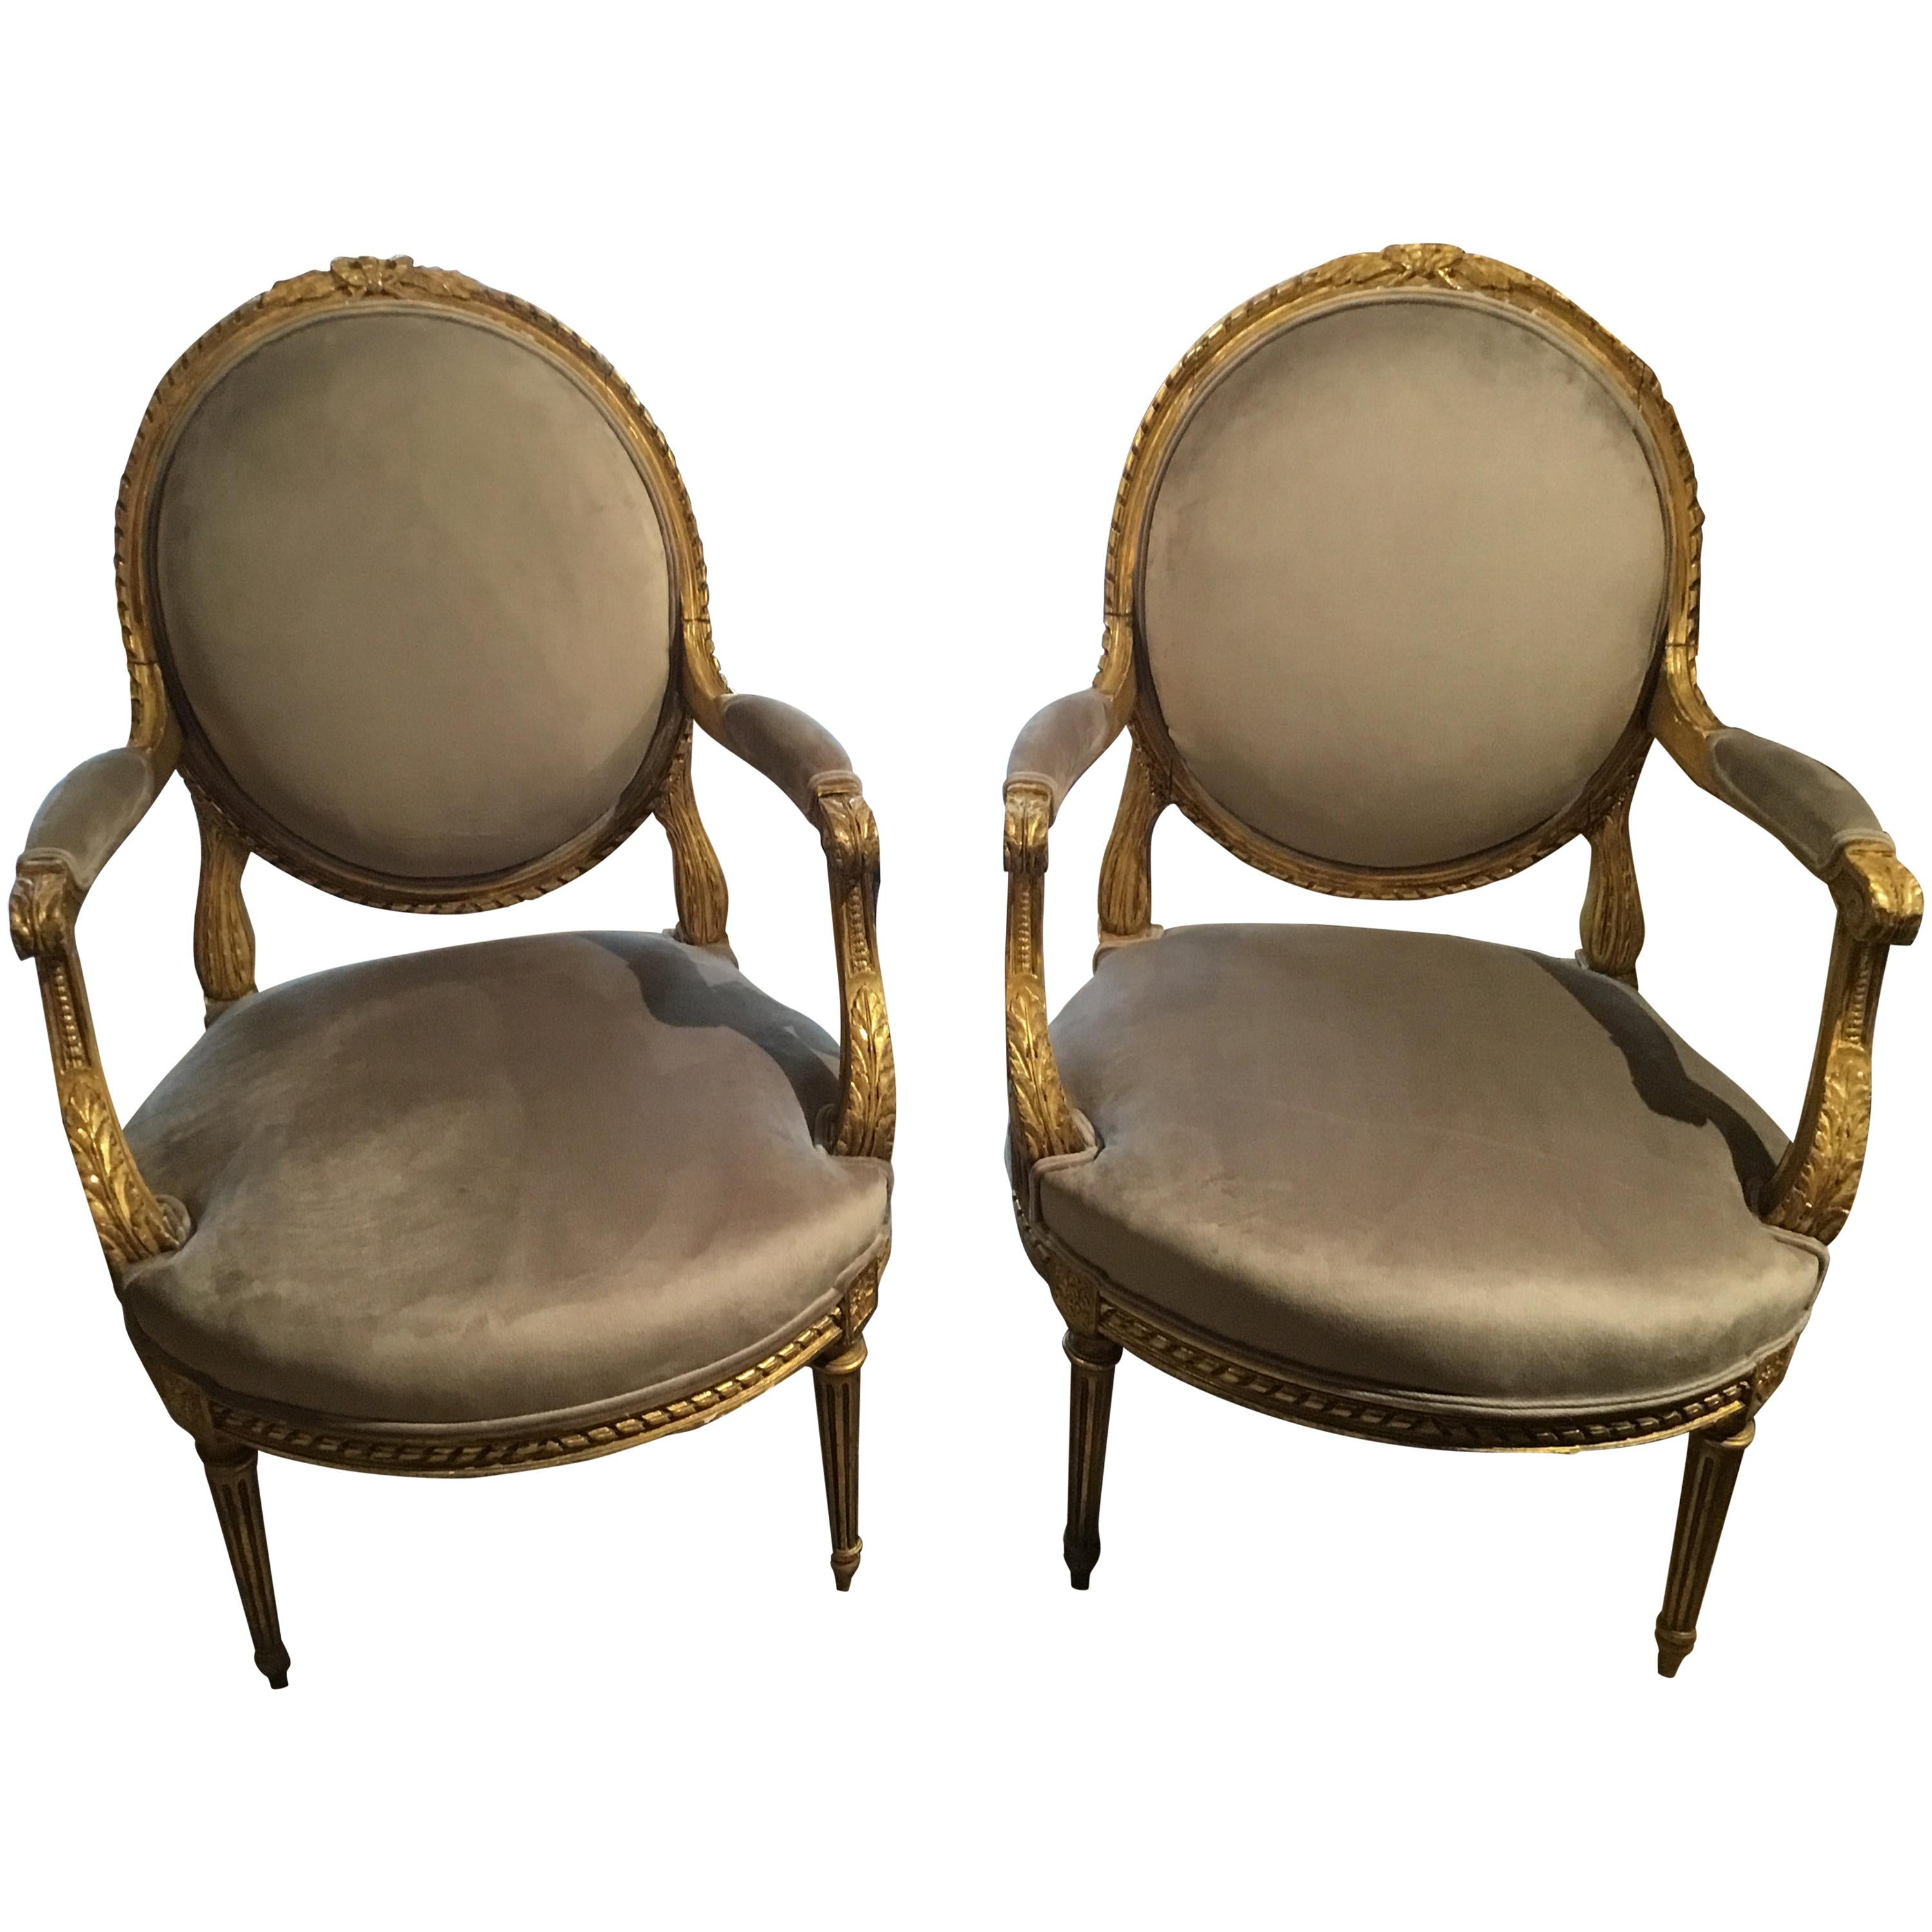 Pair of French Giltwood Louis XVI-Style Chairs with New Upholstery